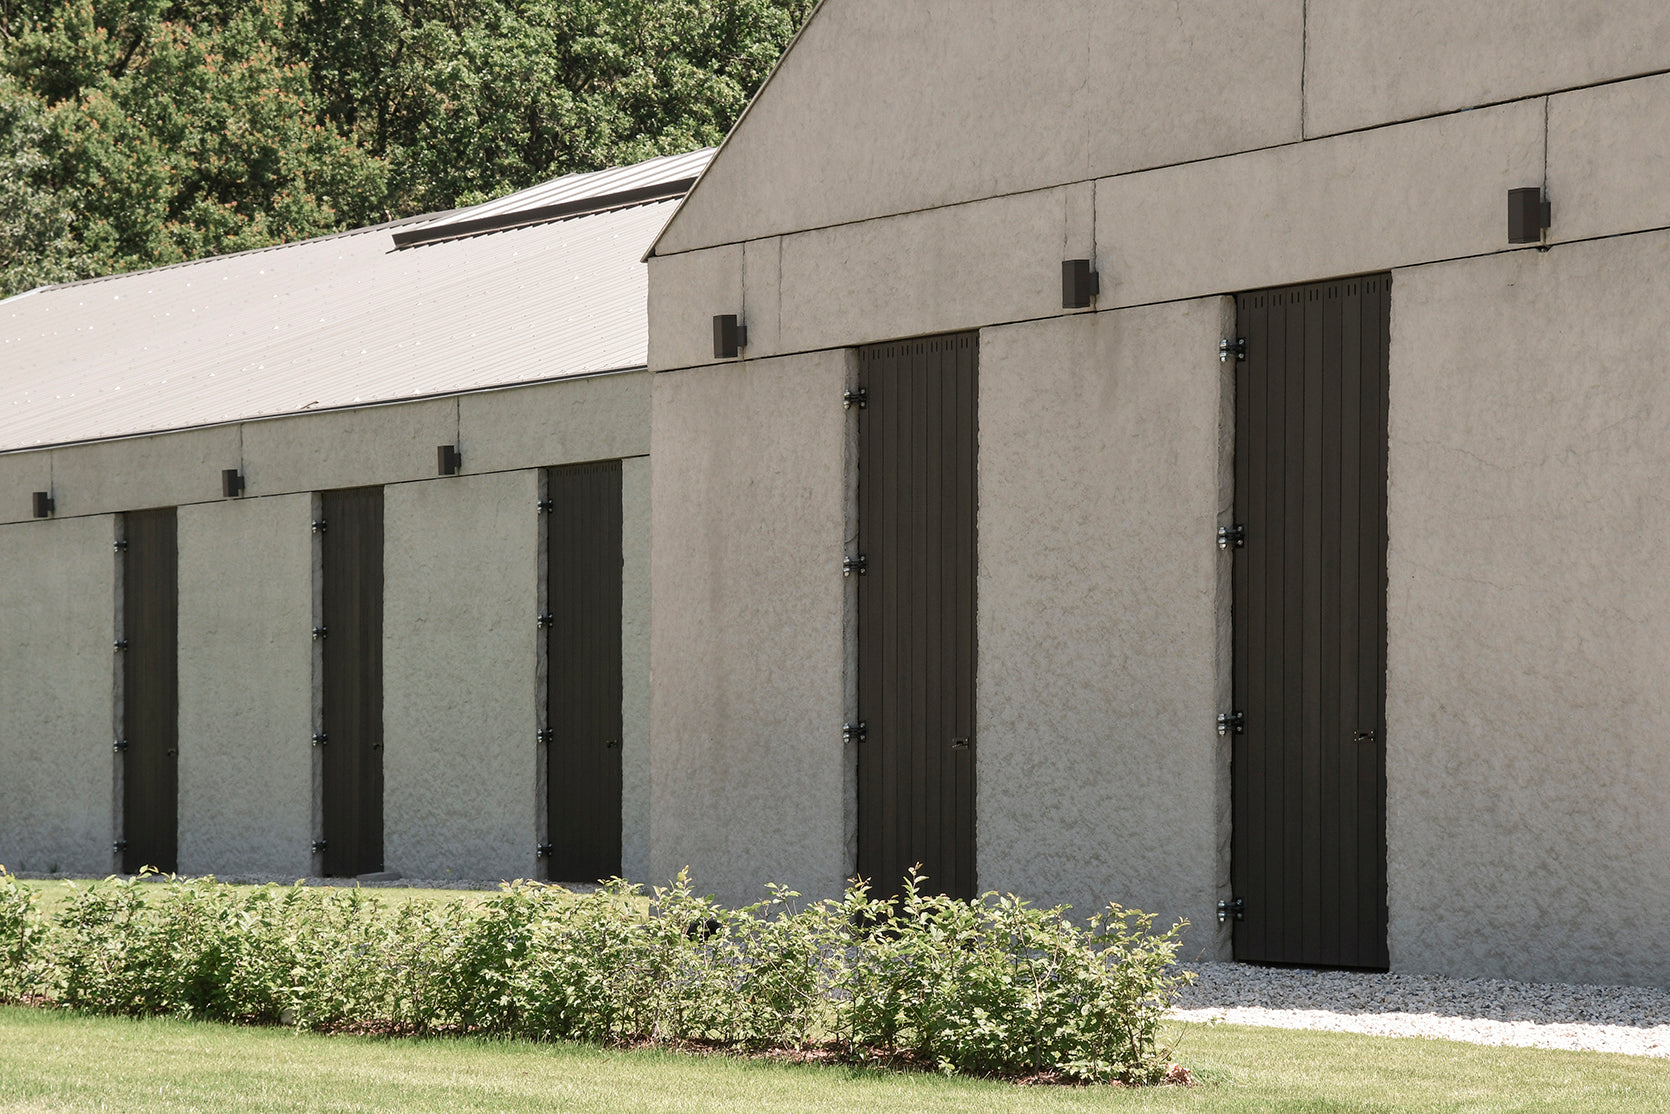 Equine center in Belgium chose Rubio Monocoat to color and protect all exterior wood.